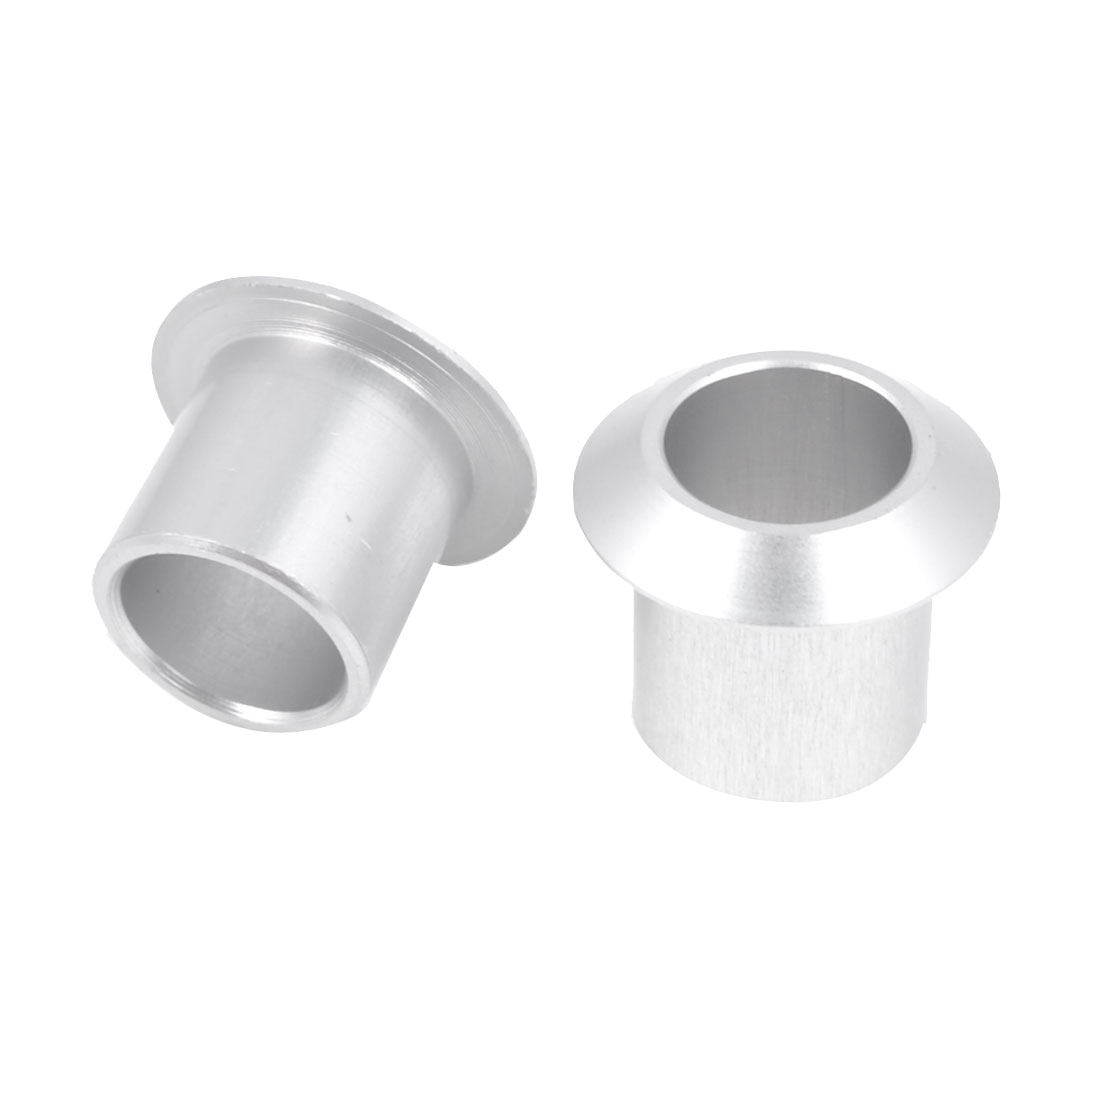 6.8mm Inner Diameter Aluminum Alloy Silicone Tube Ring Fitting for RC Model Boat